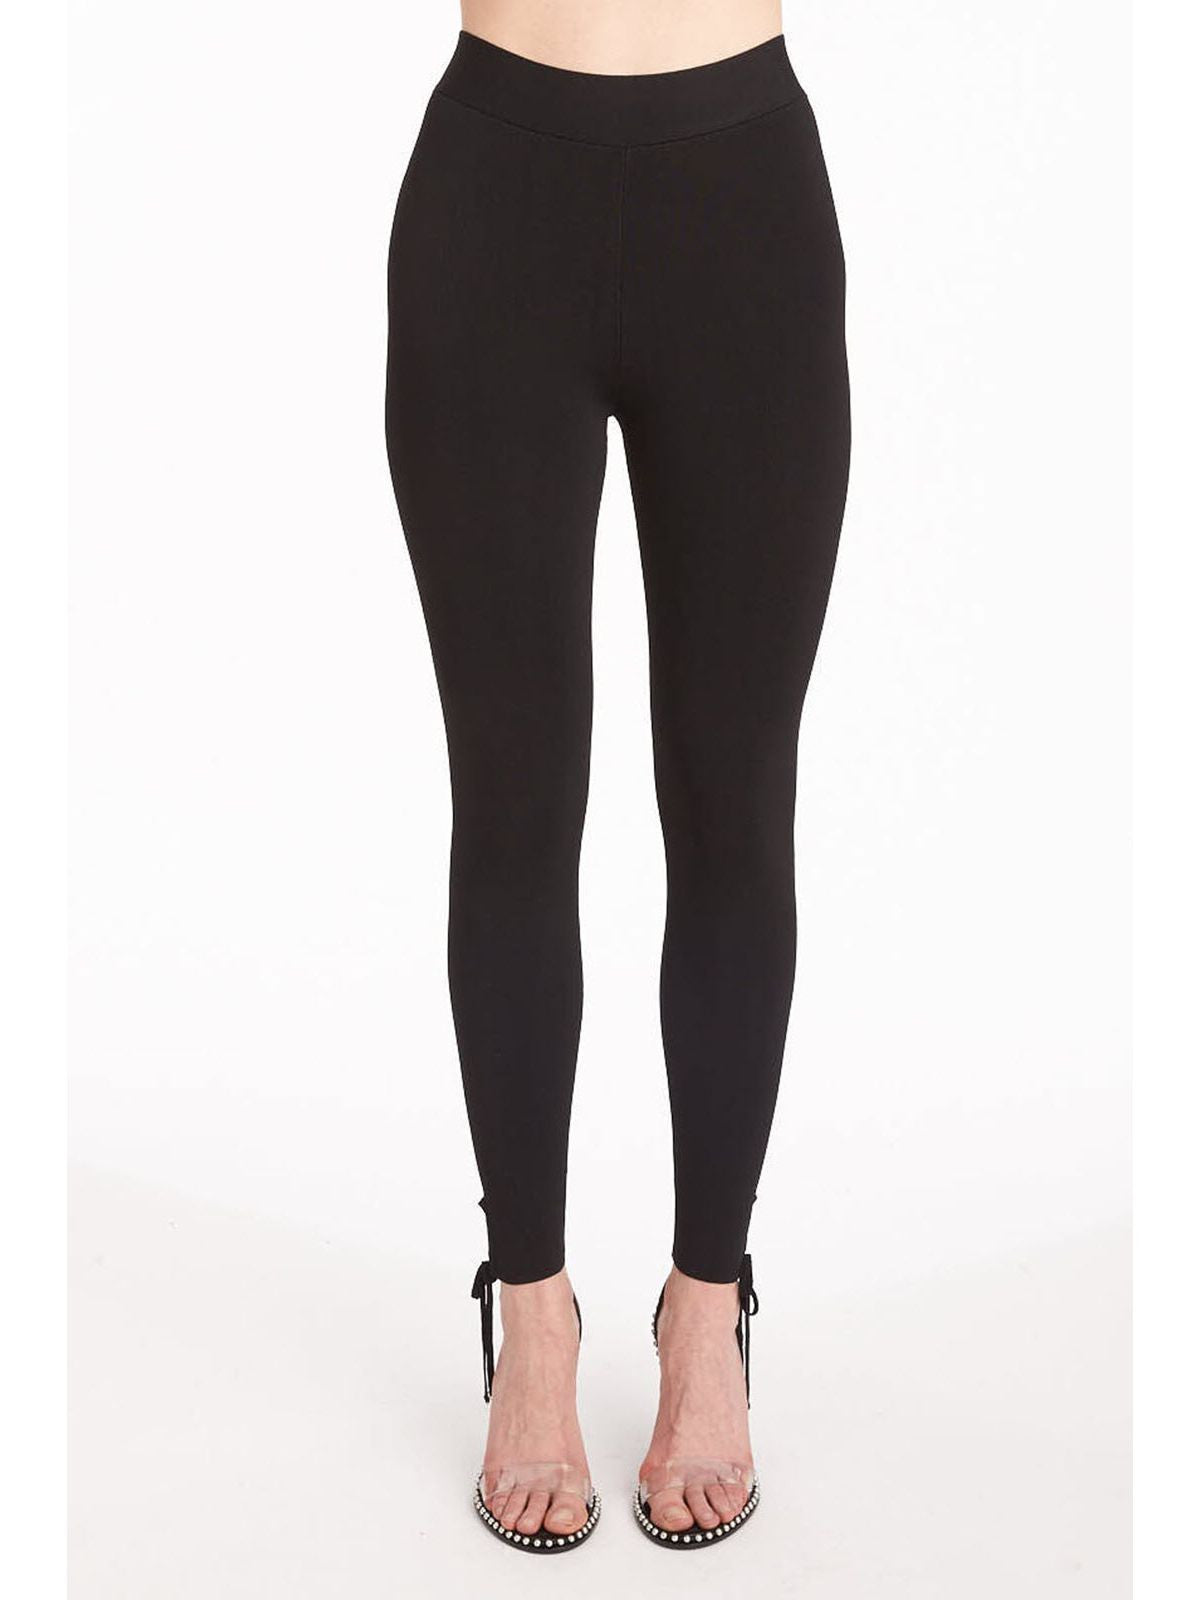 T by Alexander Wang leggings with tie detail black